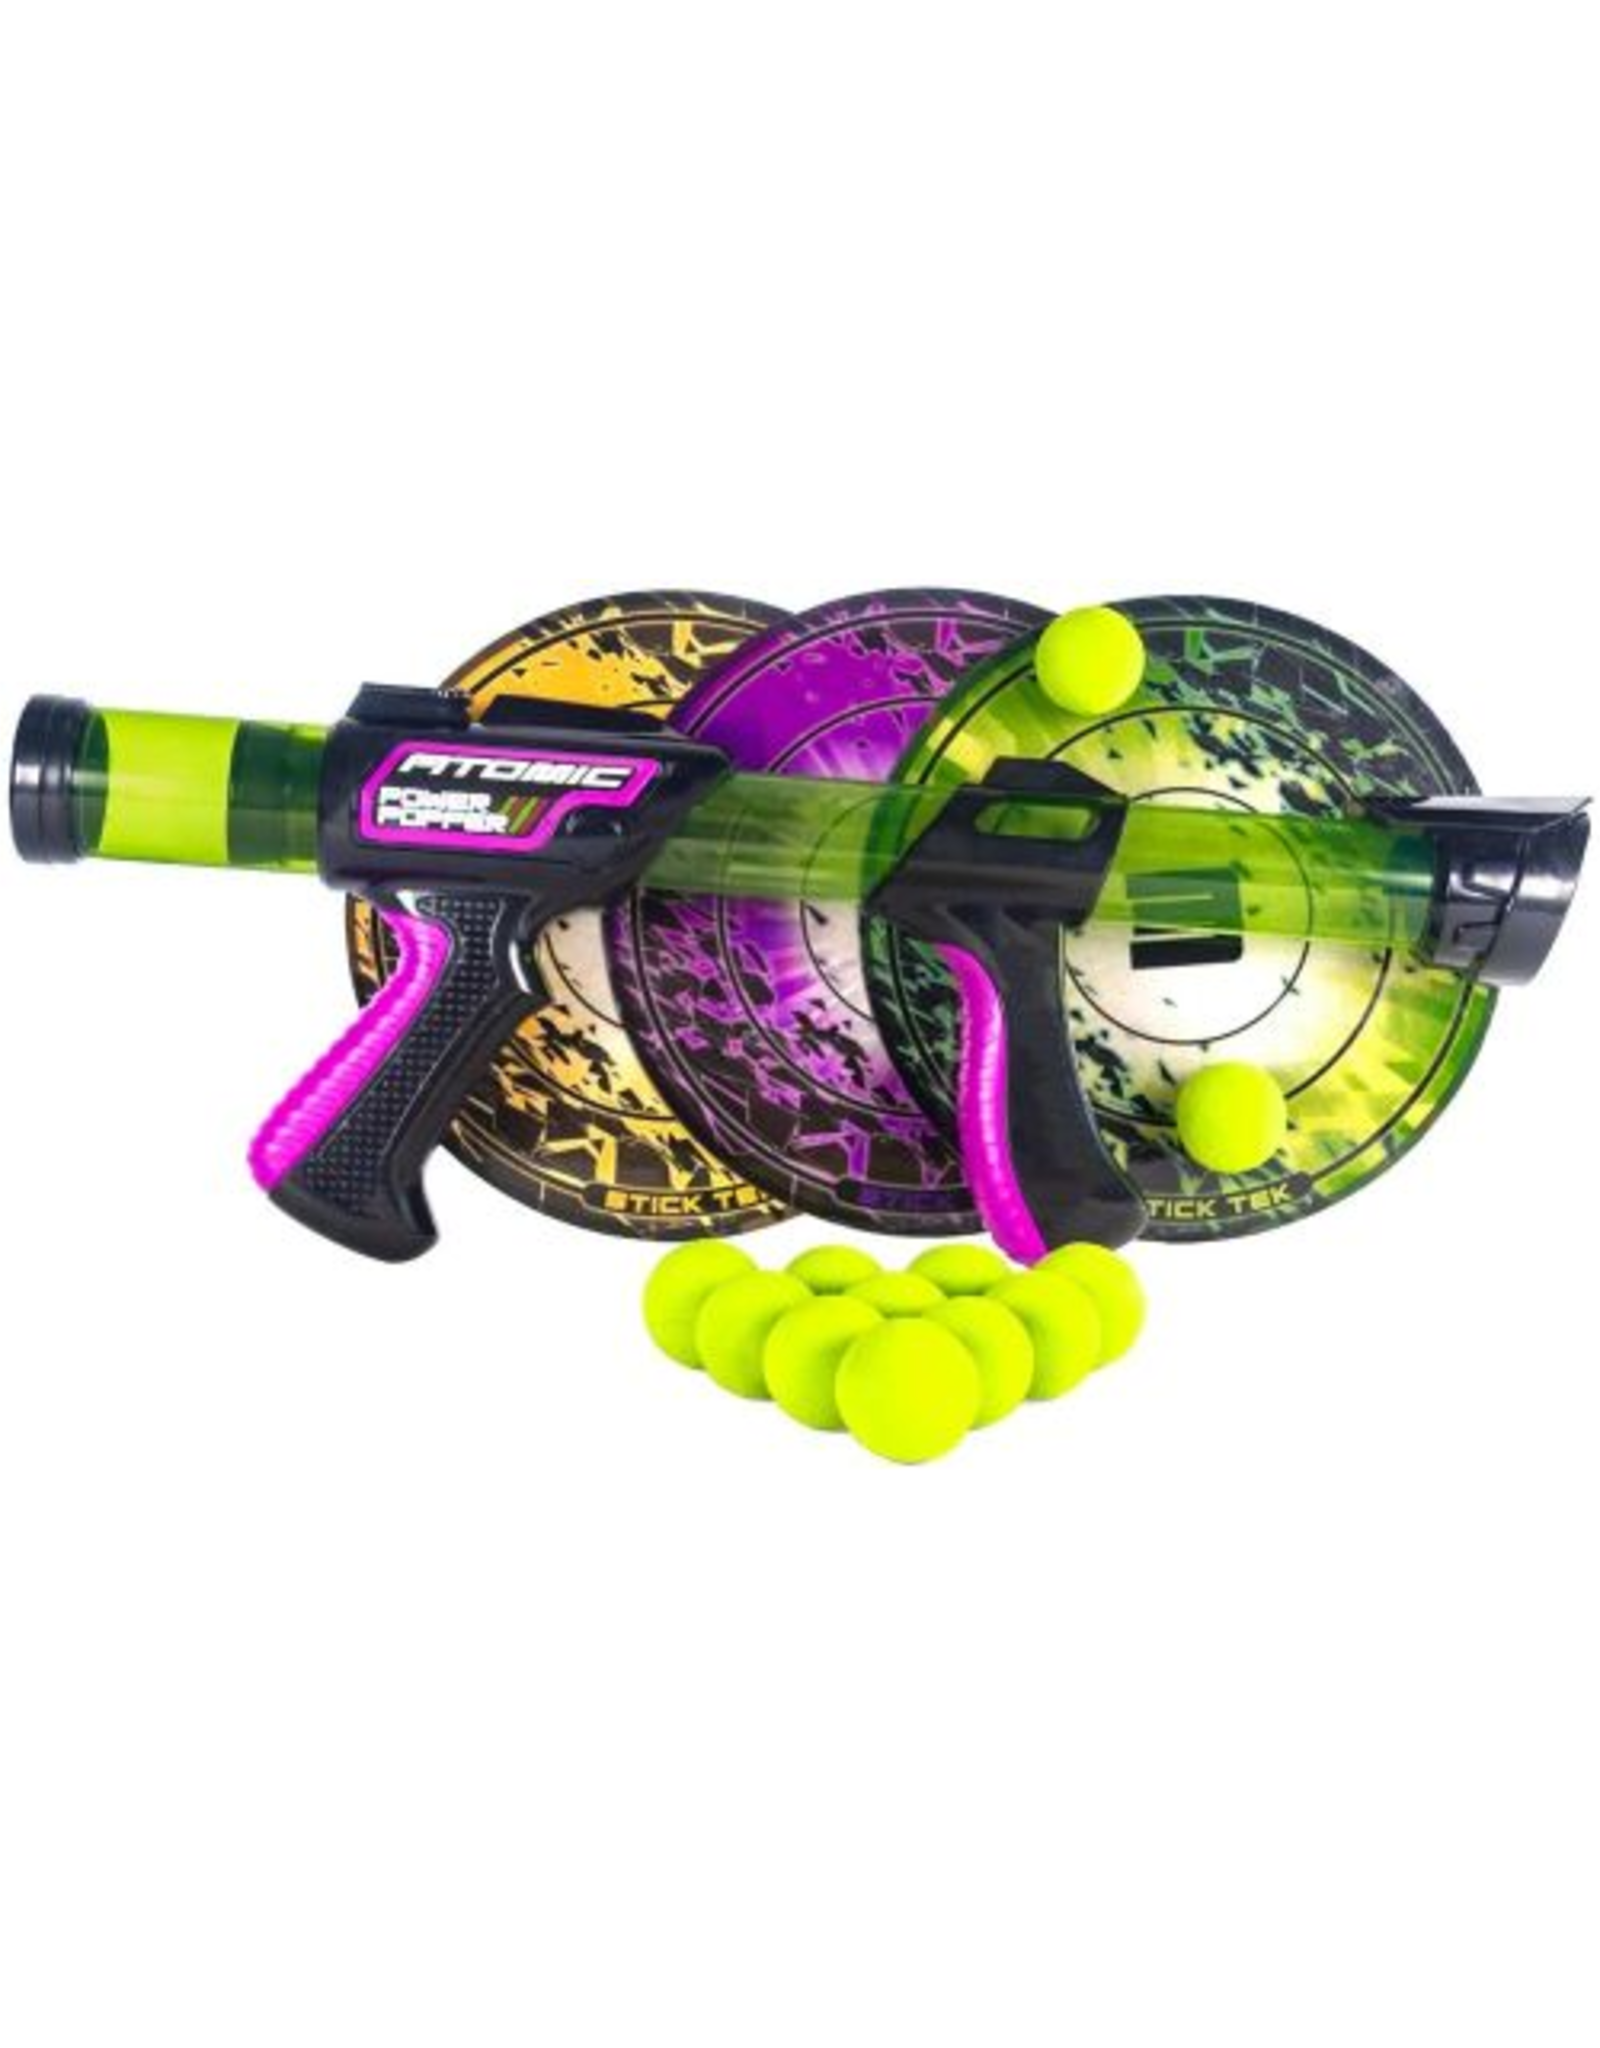 Hog Wild Atomic Power Popper Pack With Sticky Targets